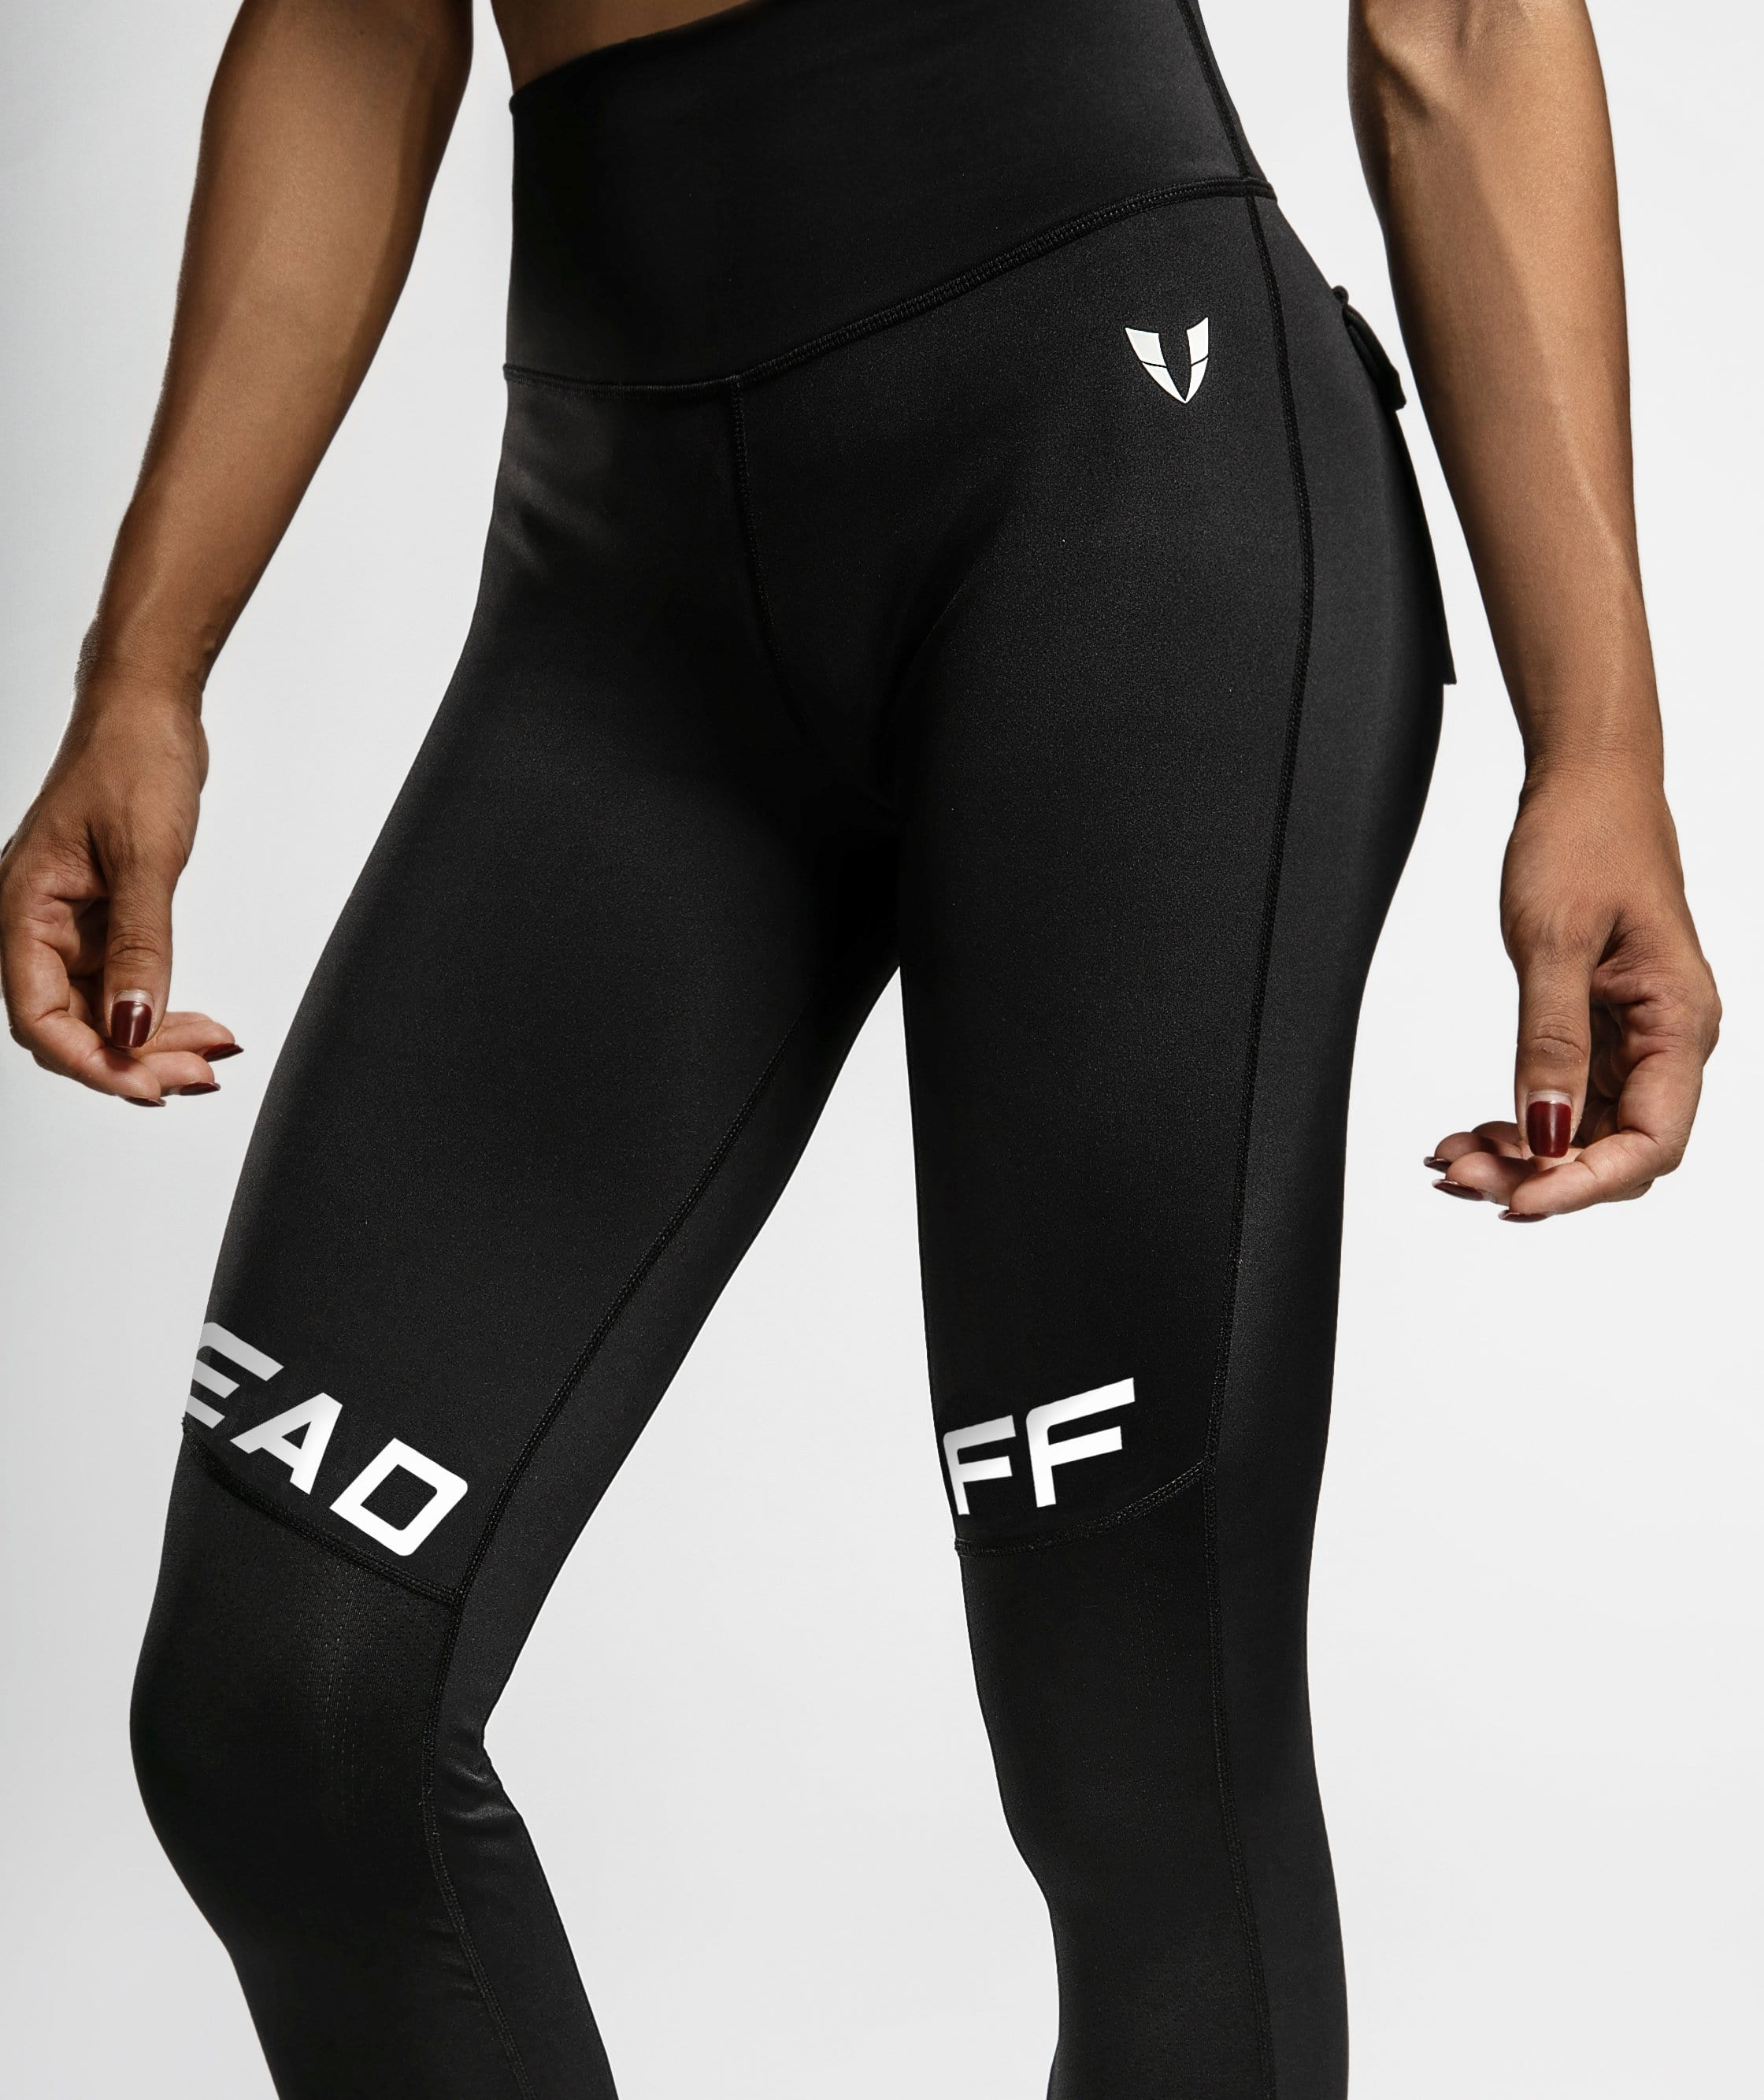 Core Leggings Pro - Black - Firm Abs Fitness